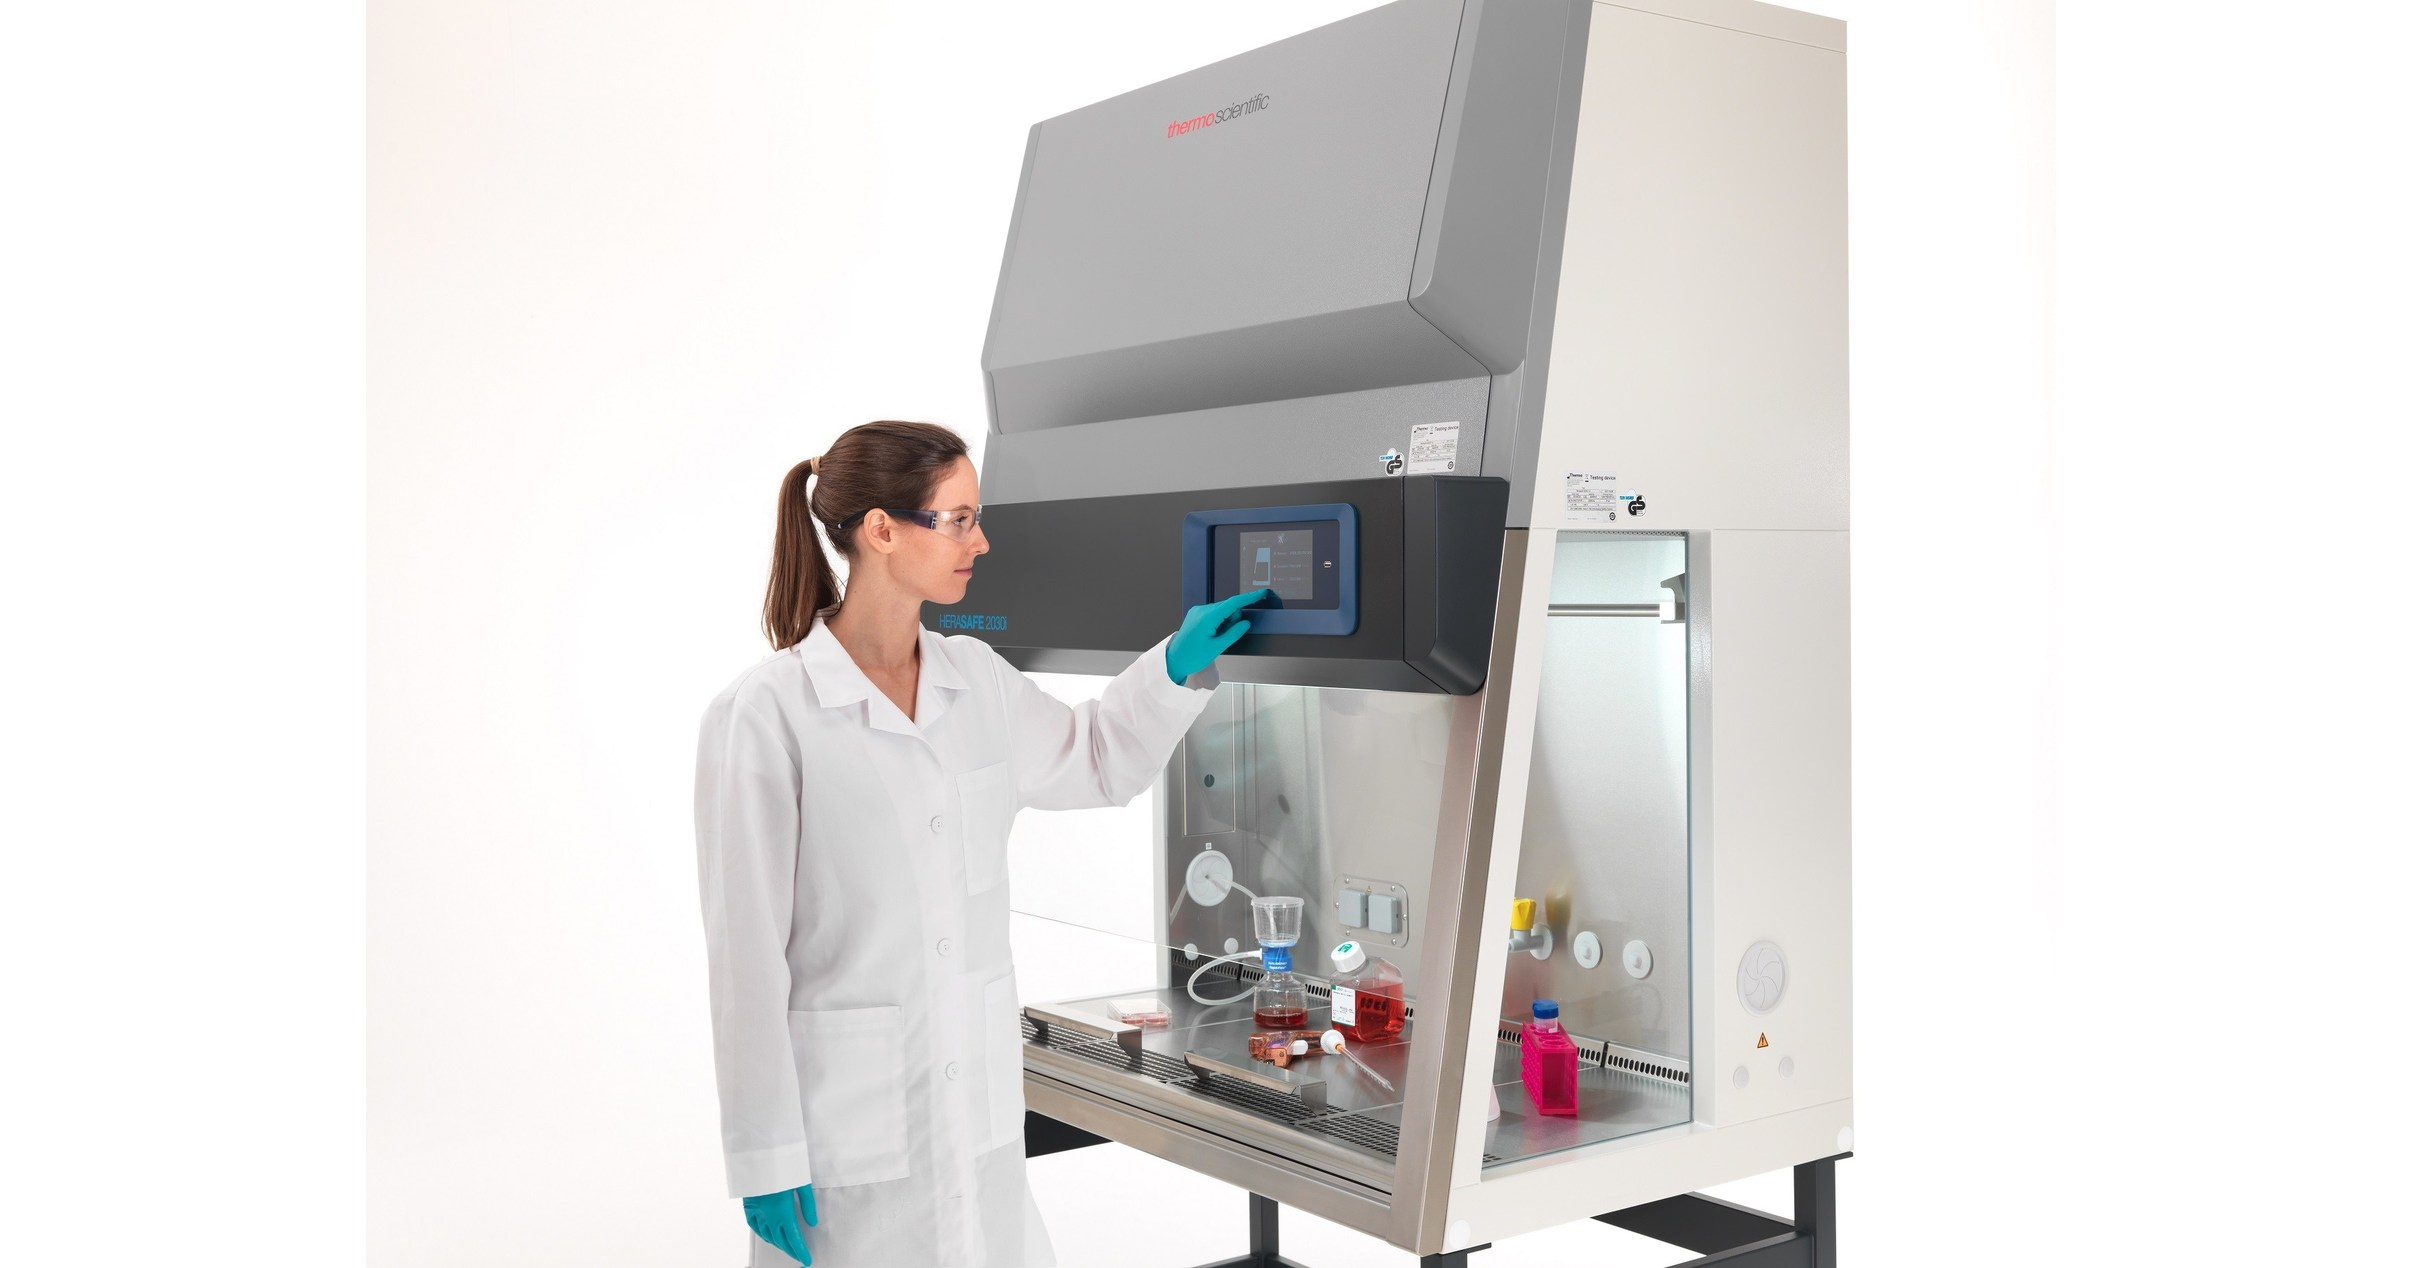 Thermo Fisher Scientific Announces Its First Cloud Enabled